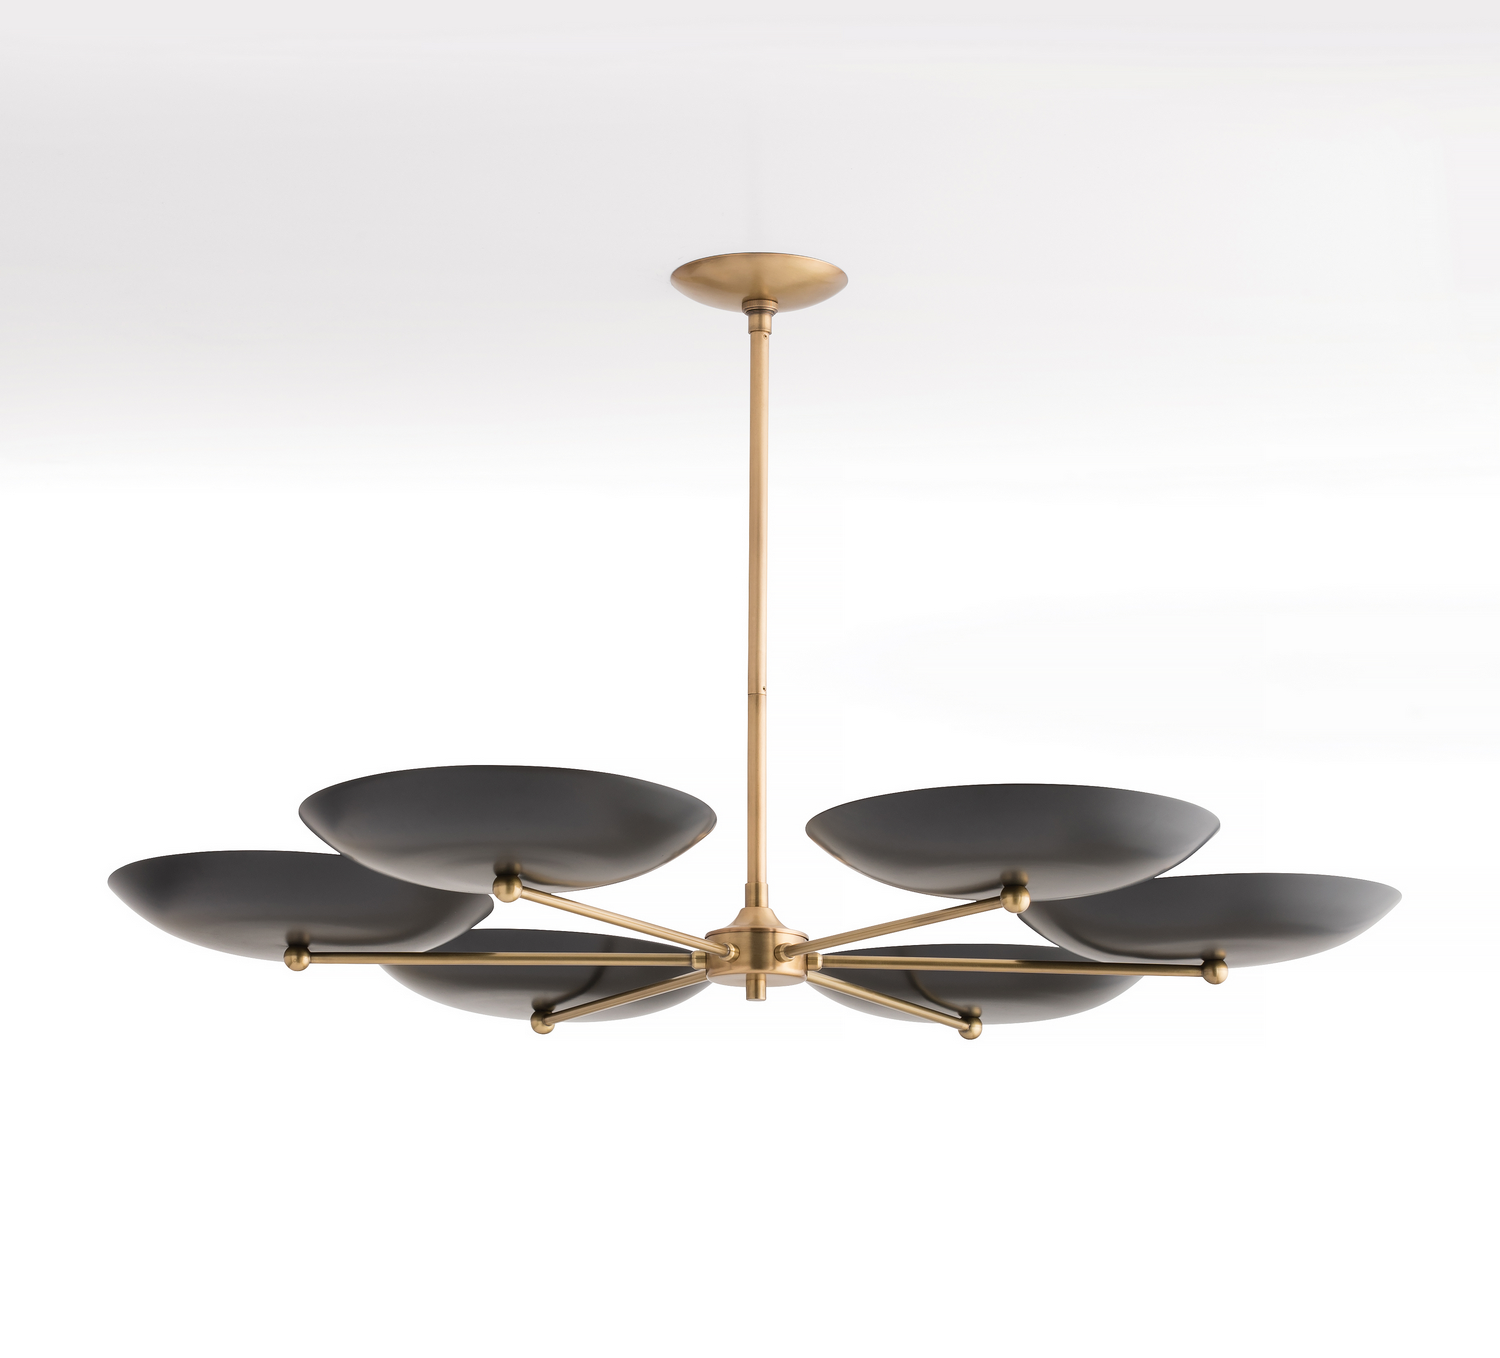 Chandelier from the Griffith collection by Arteriors 89047